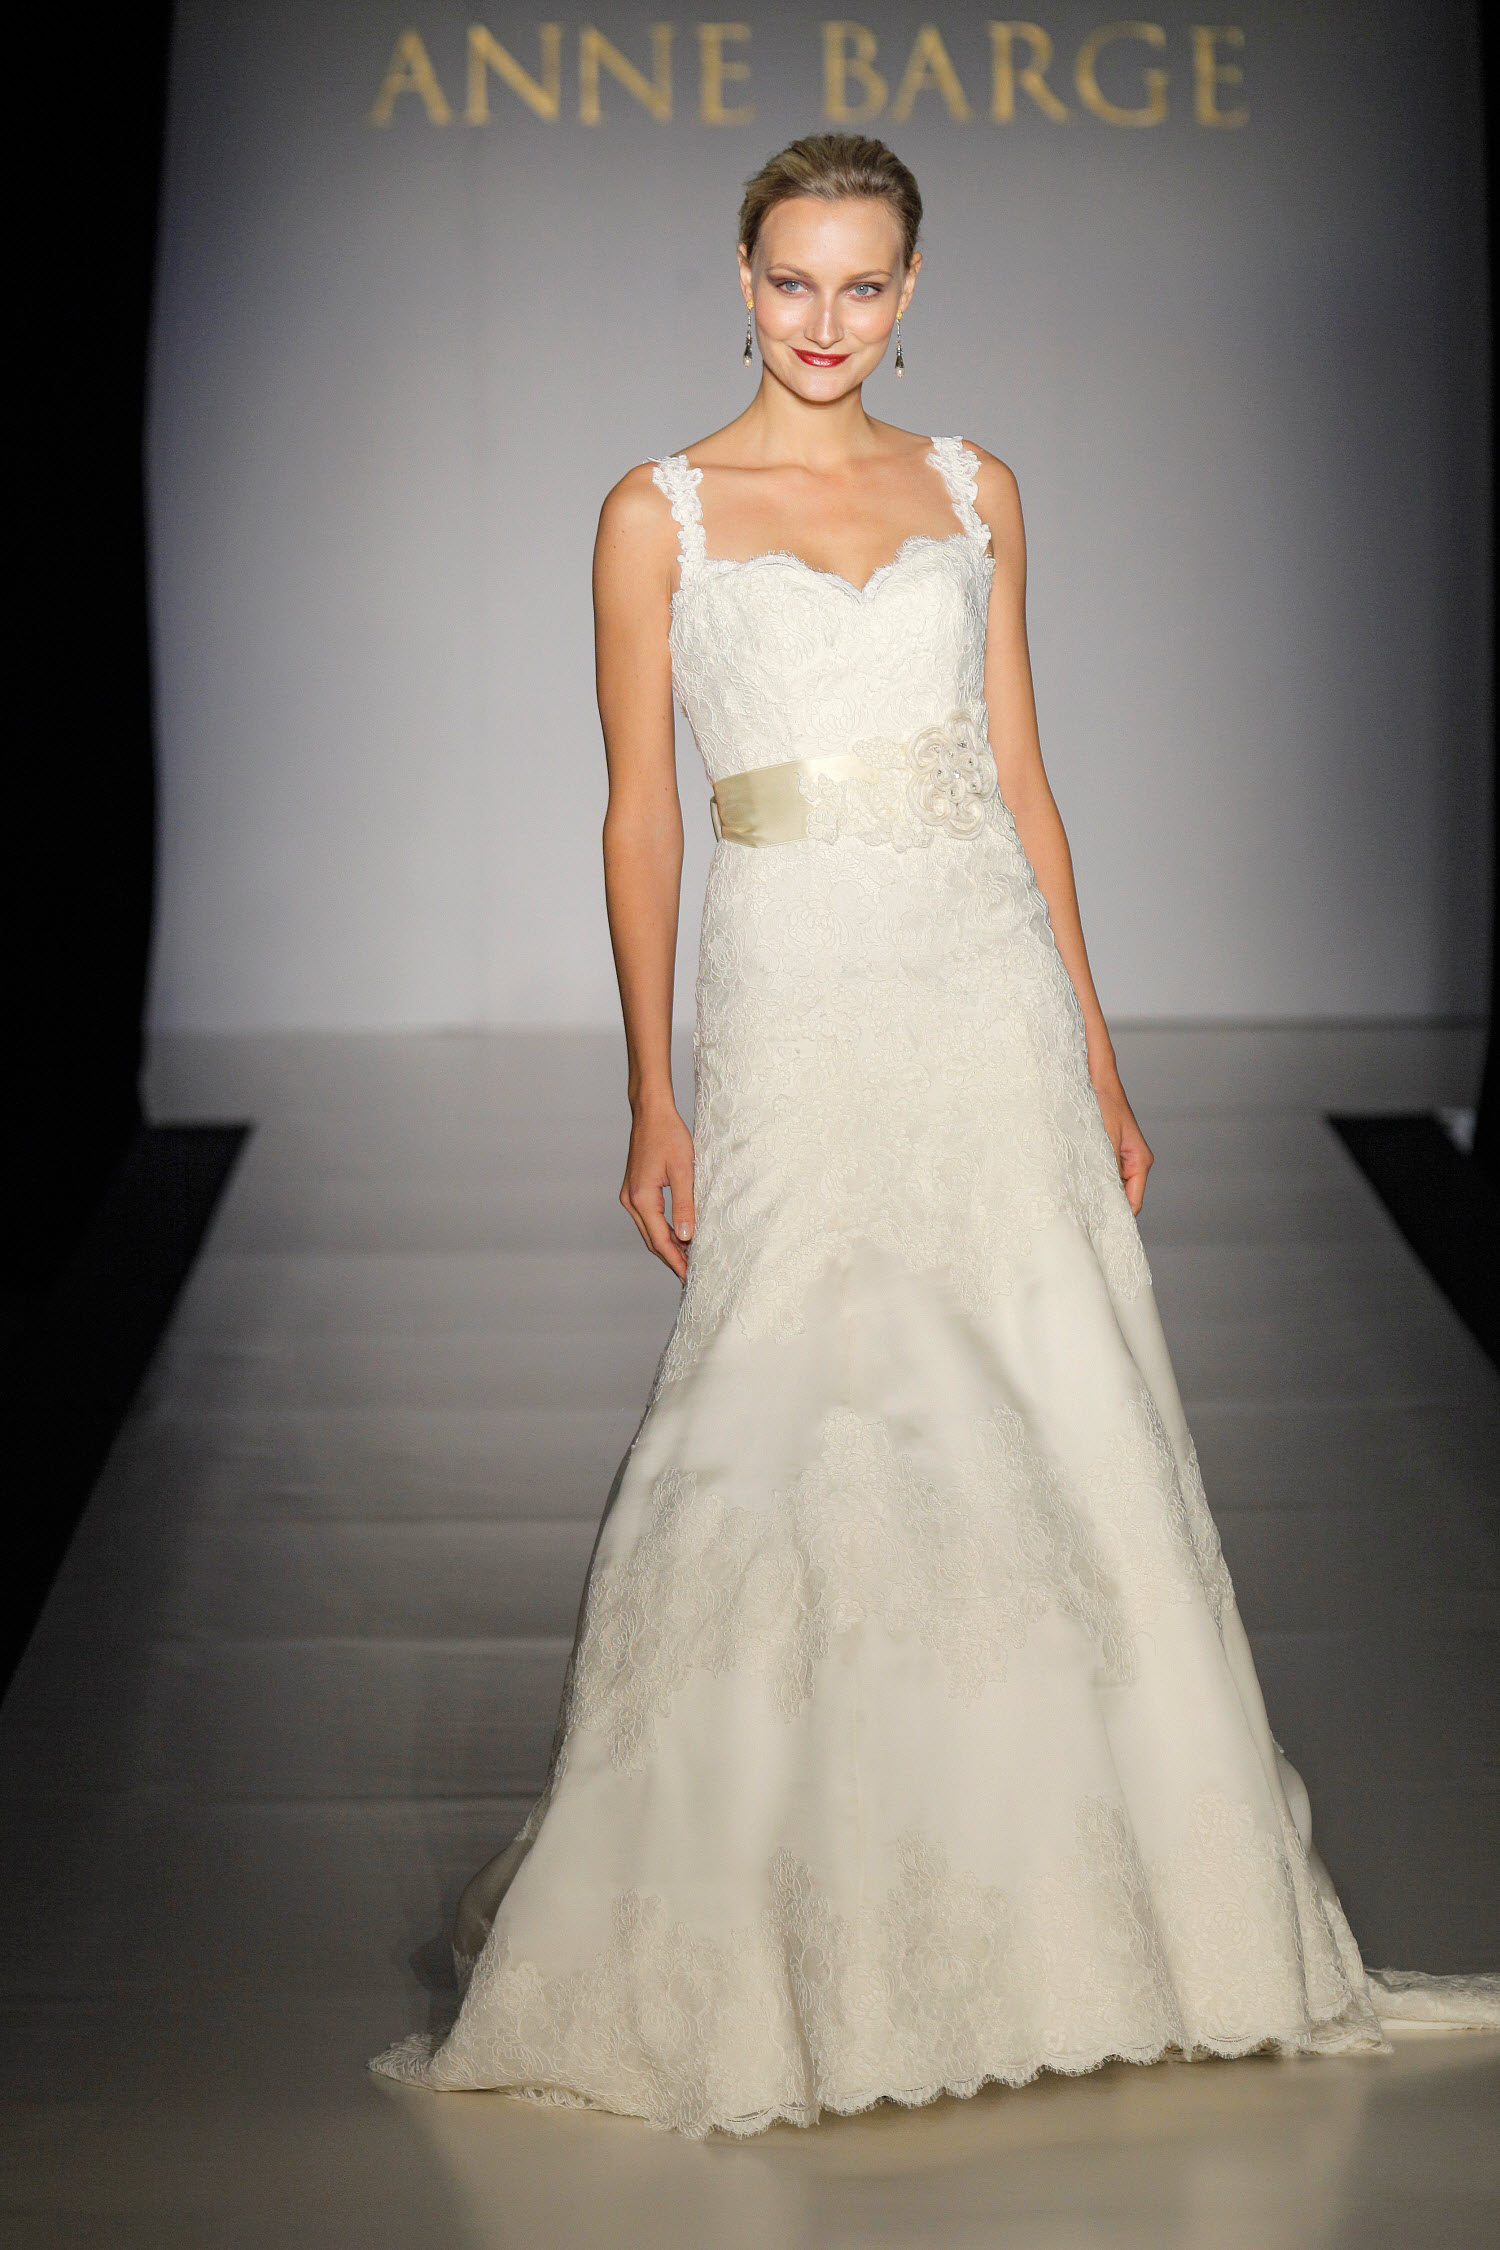 Fall-2011-wedding-dresses-anne-barge-lanier-romantic-lace-bridal-gown-open-back-sweetheart-neckline.original